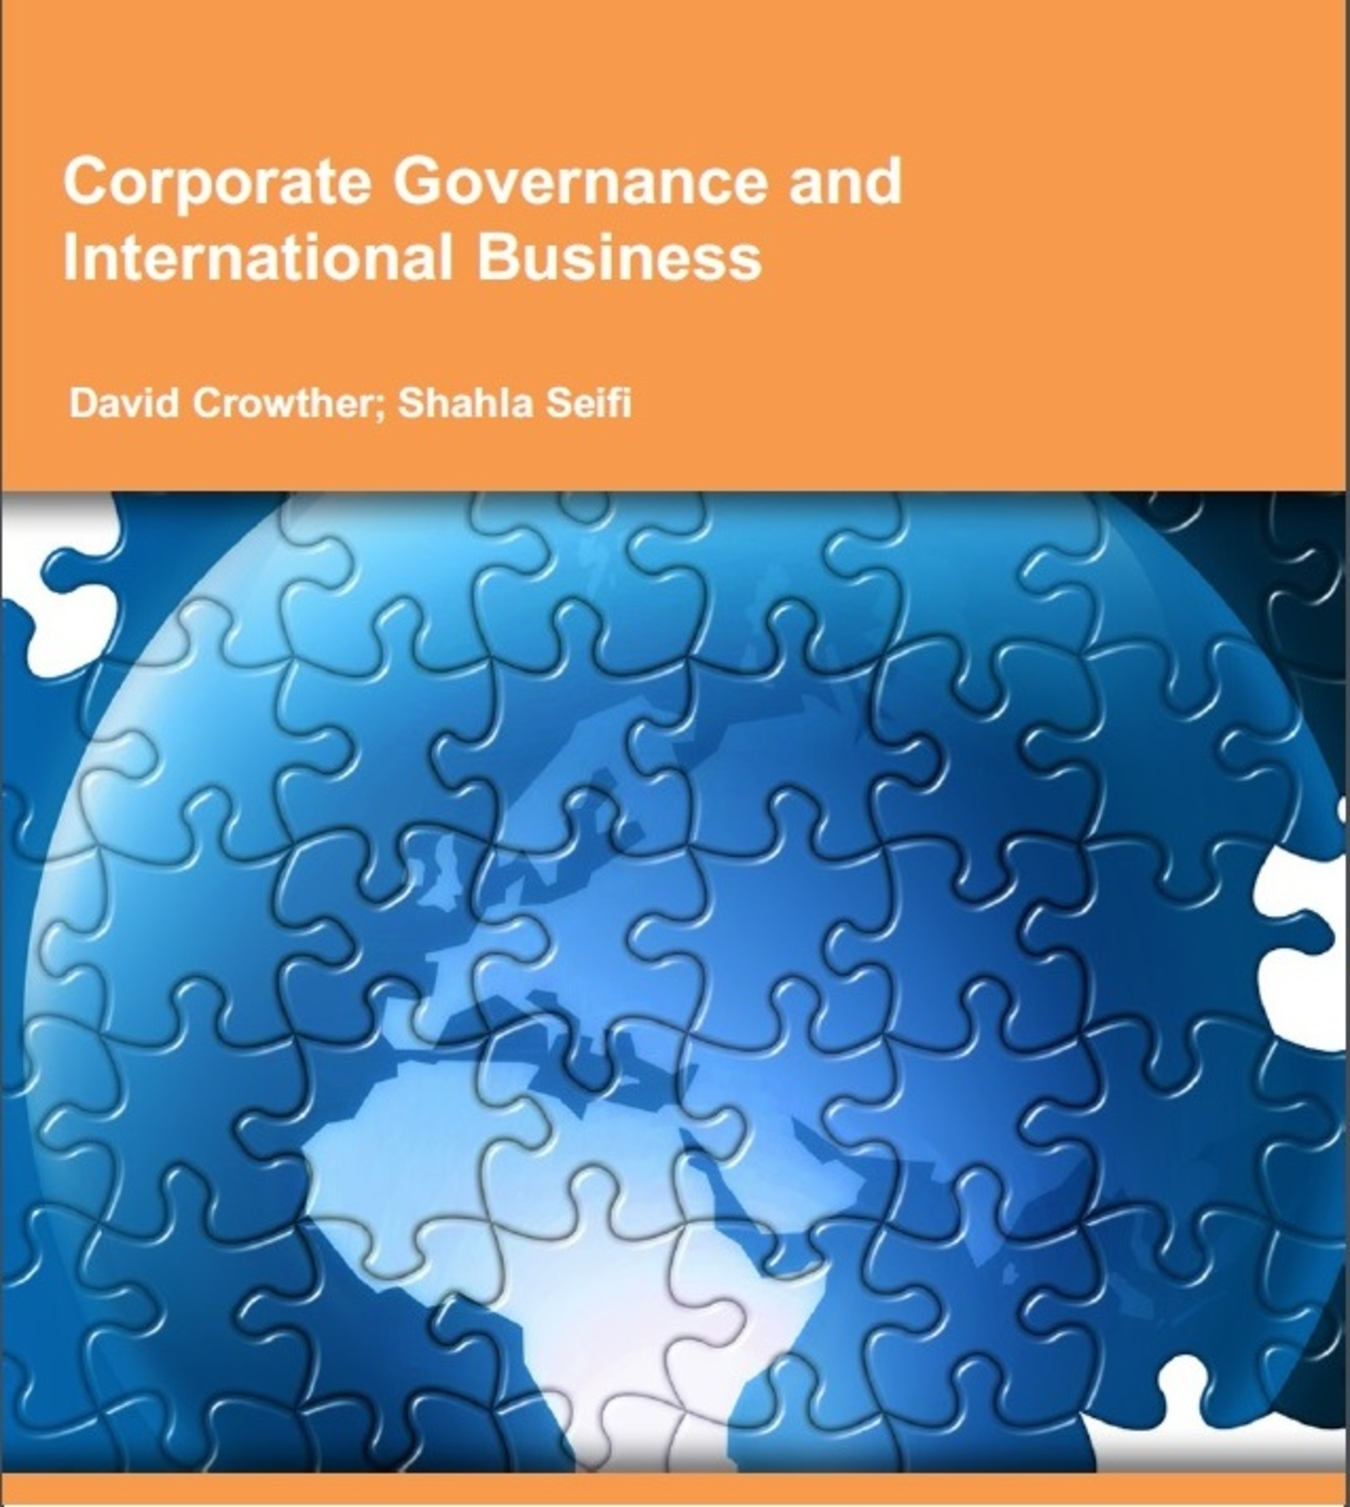 corporate goverance The nyse: corporate governance guide (the guide) contains summary information about legal and regulatory aspects of corporate governance and is current as of the date of its initial publication (december.